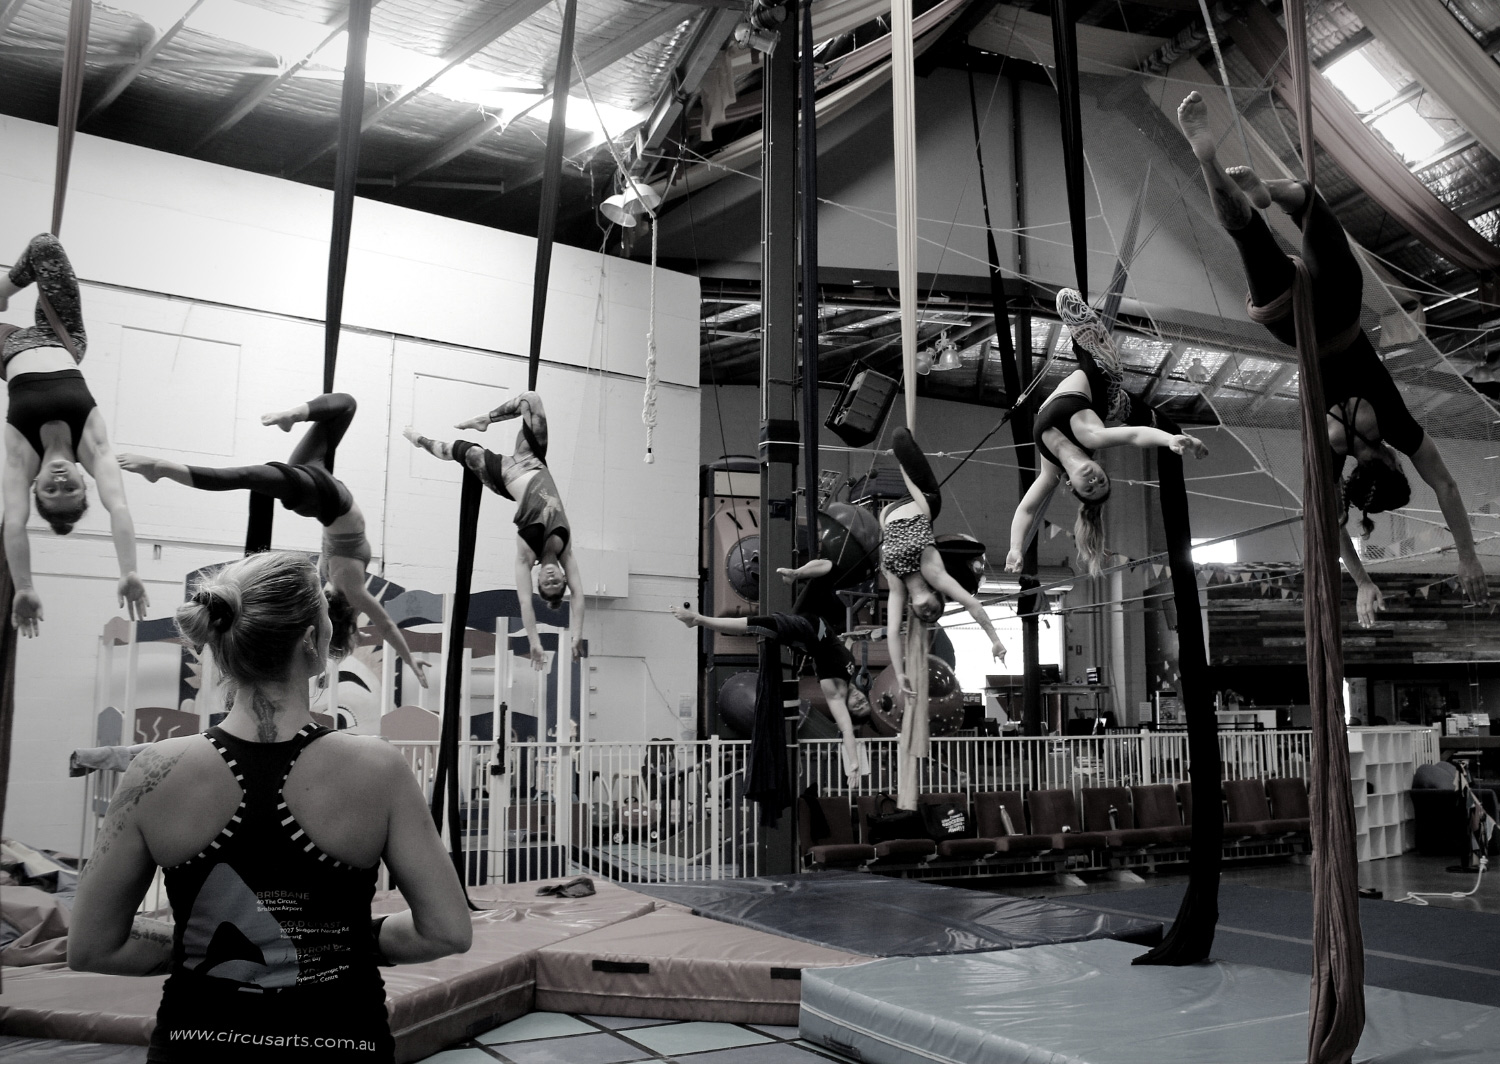 circus-arts-byron-bay-3-day-aerial-and-pole-intensive-course-lyra-static-trapeze-swinging-silks-spanish-web-2